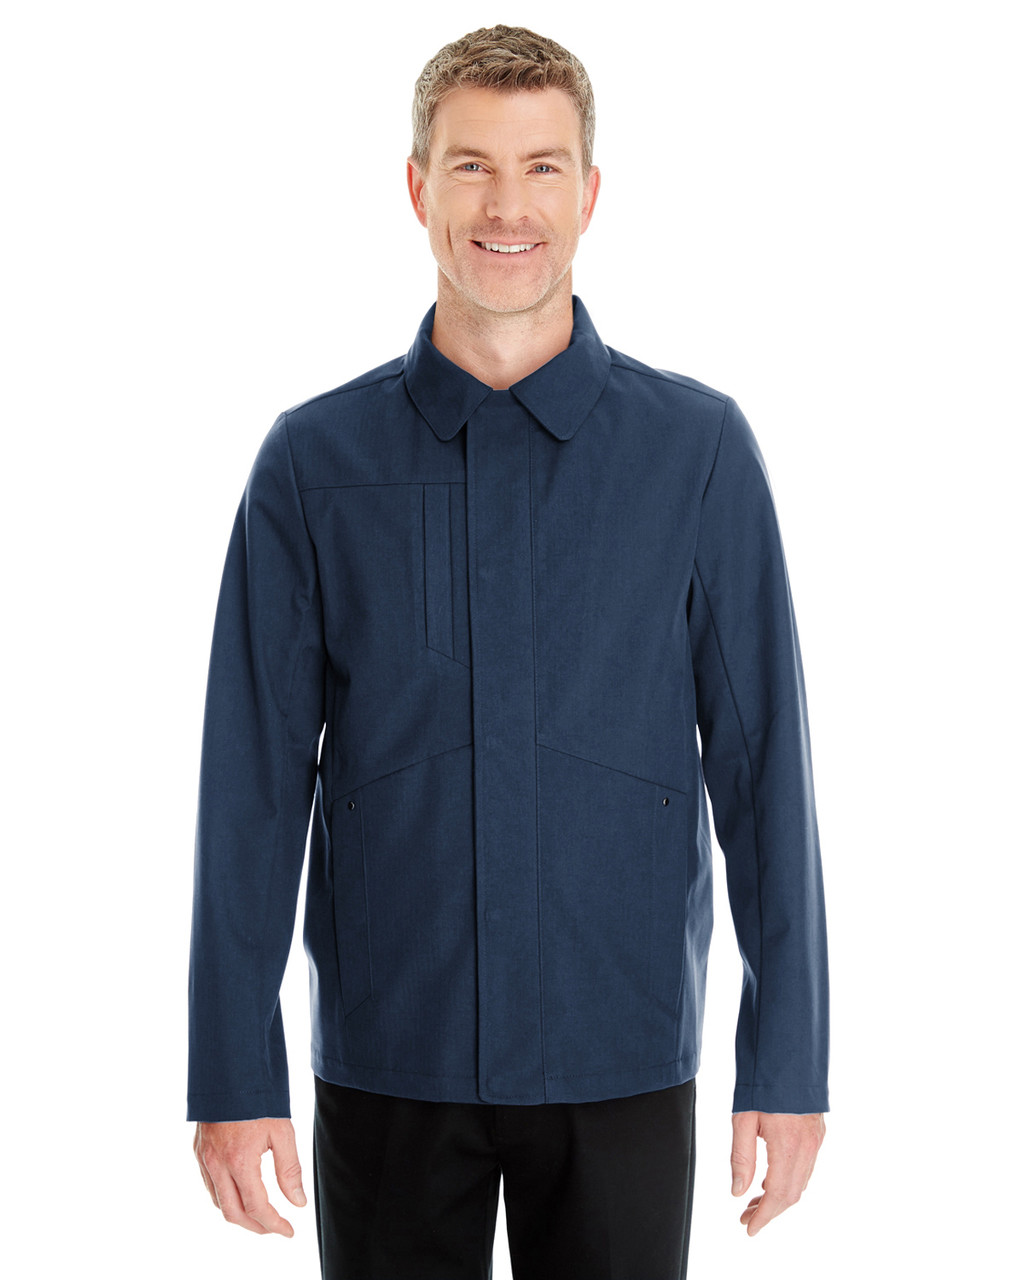 Navy - Front- NE705 Ash City - North End Men's Edge Soft Shell Jacket with Fold-Down Collar | Blankclothing.ca